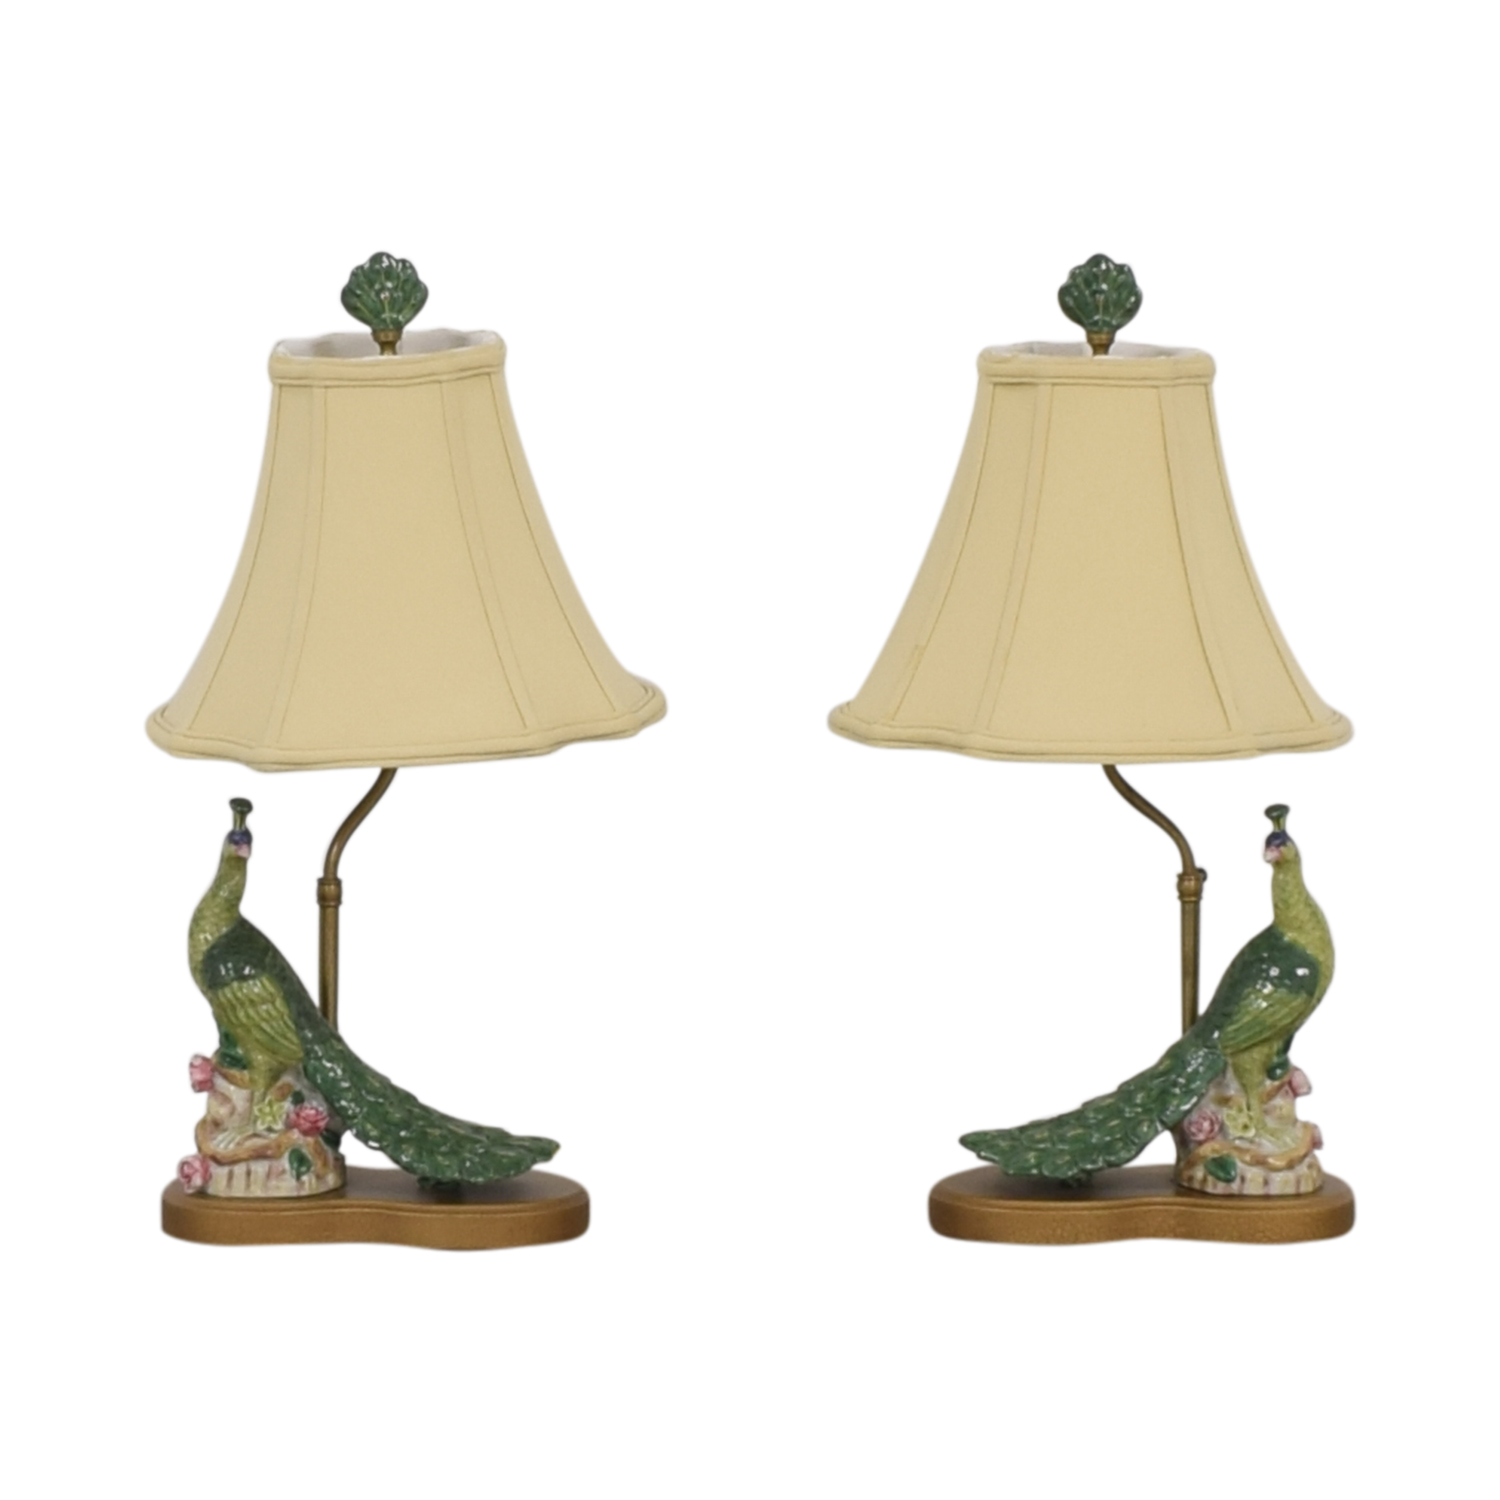 Ethan Allen Ethan Allen Decorative Table Lamps nj